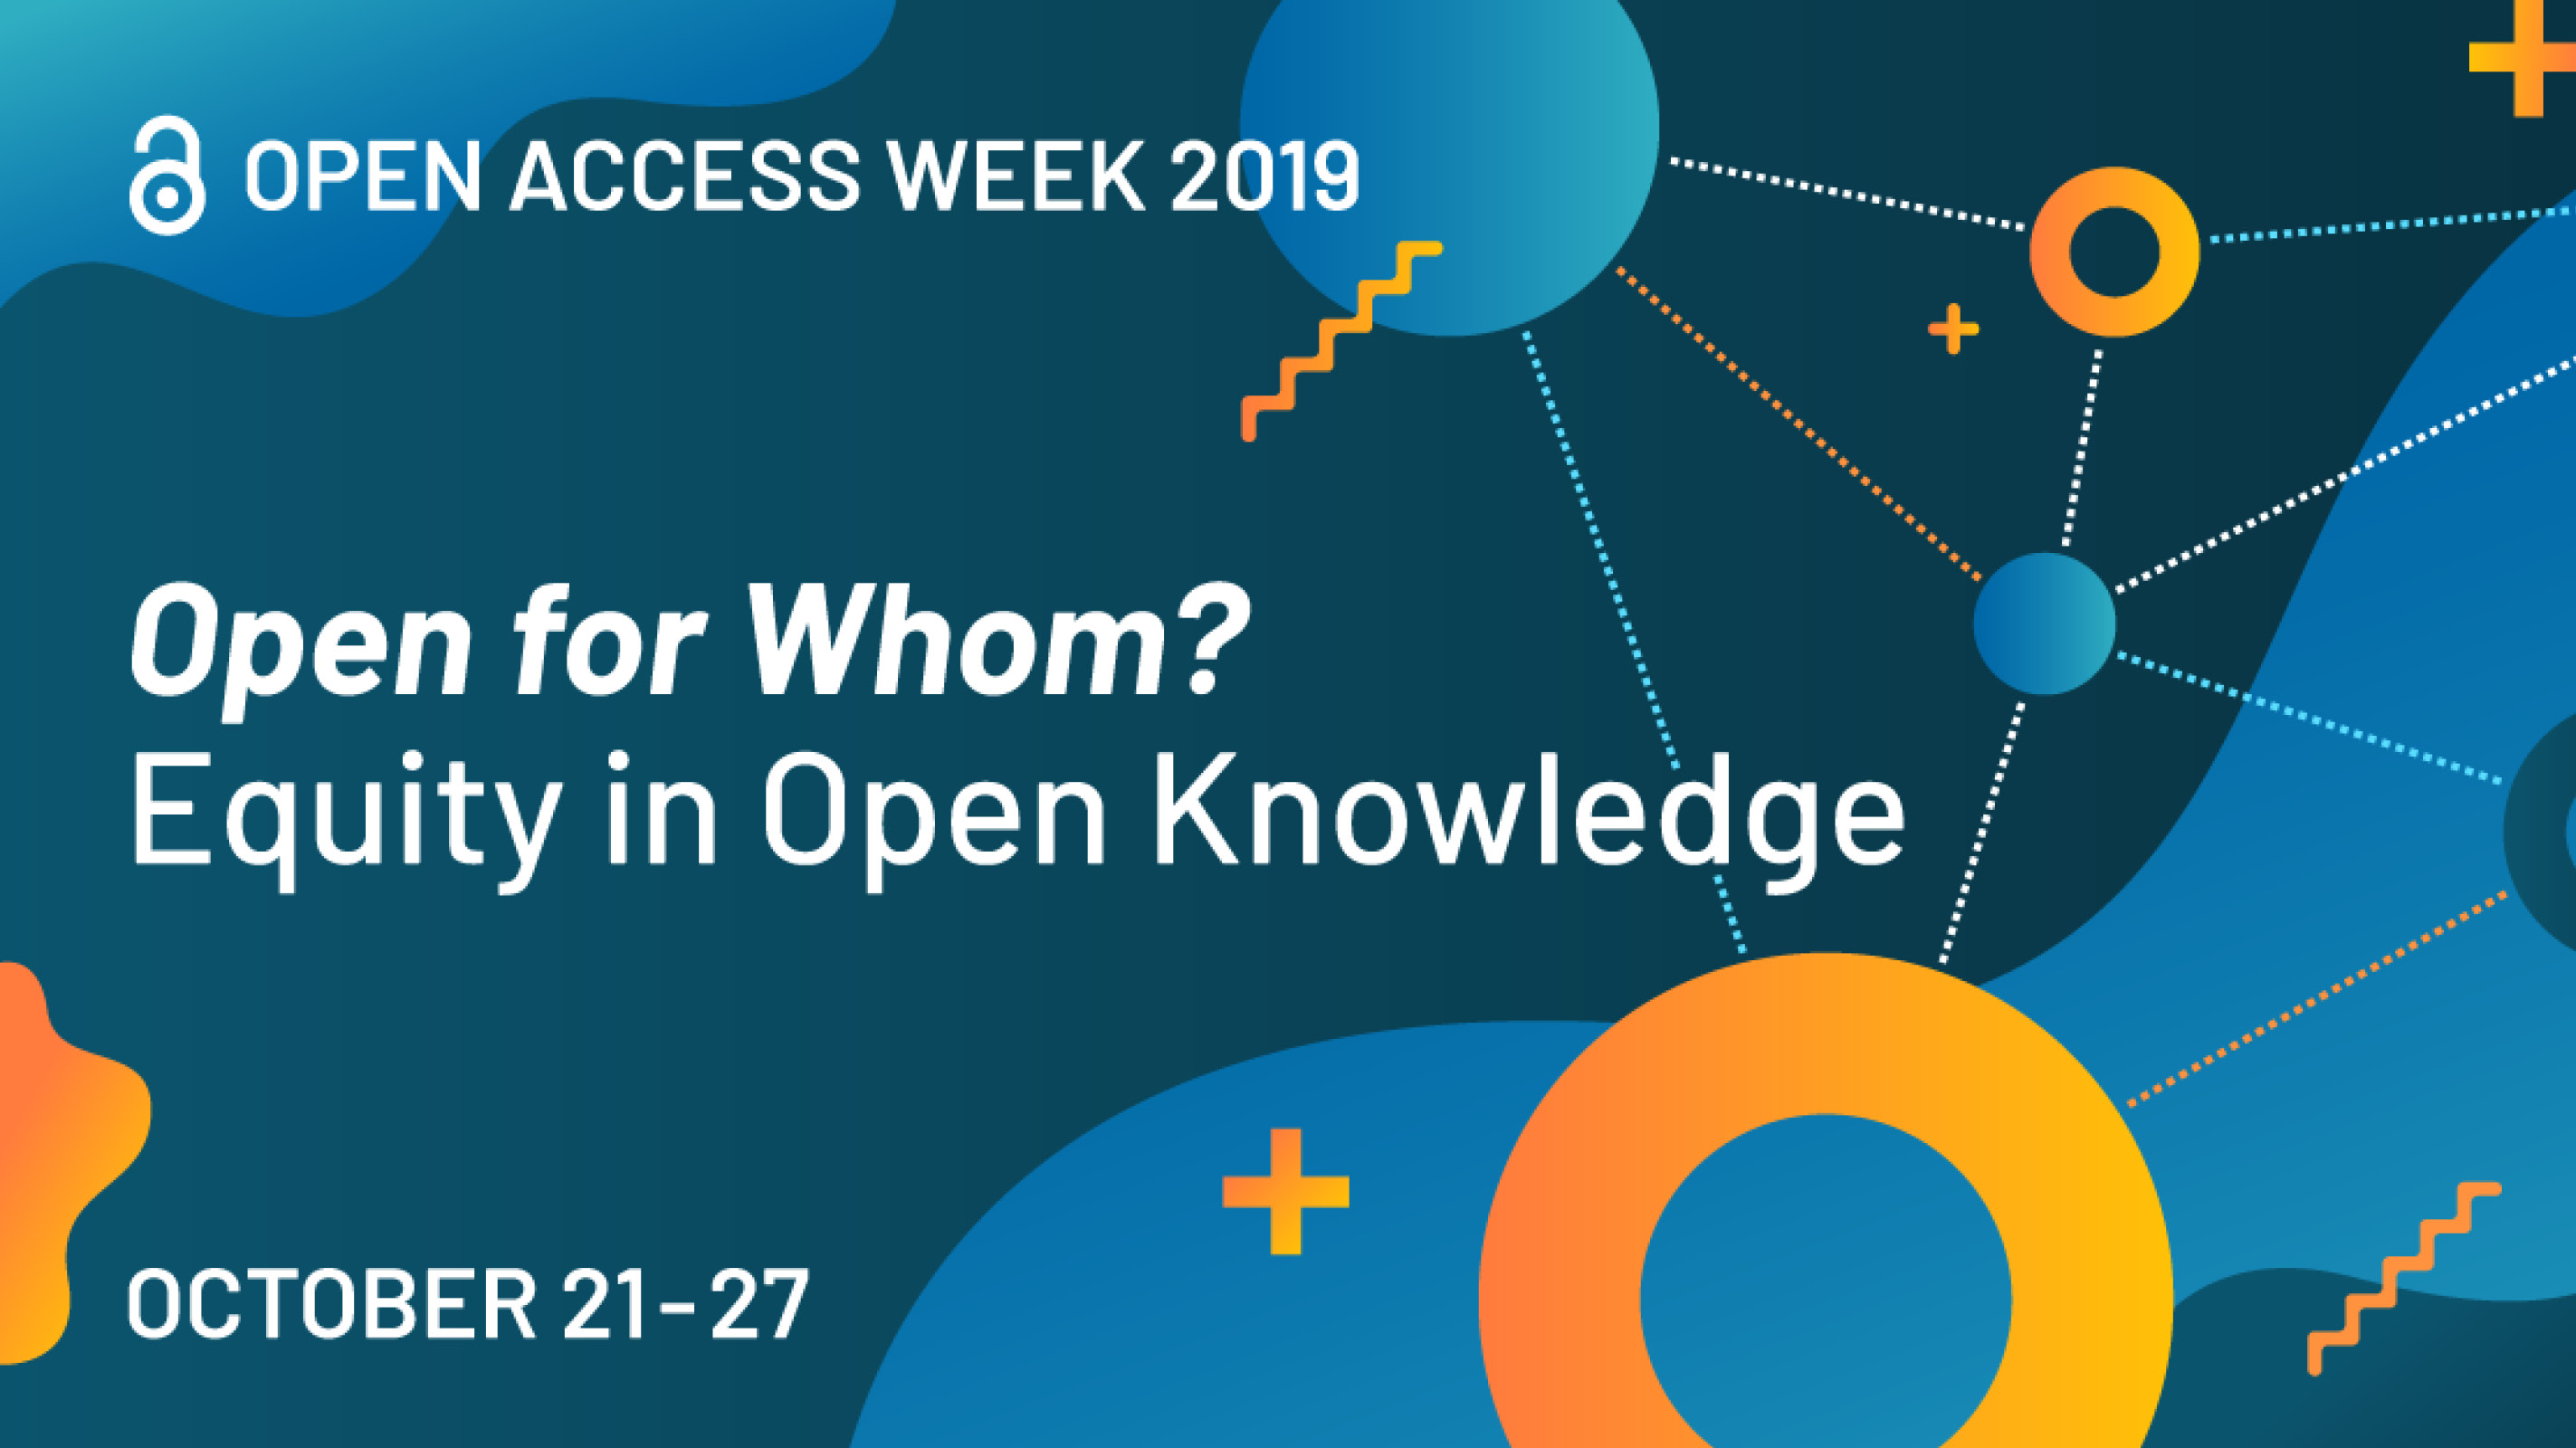 Open for Whom? Open Access Week, October 21-27